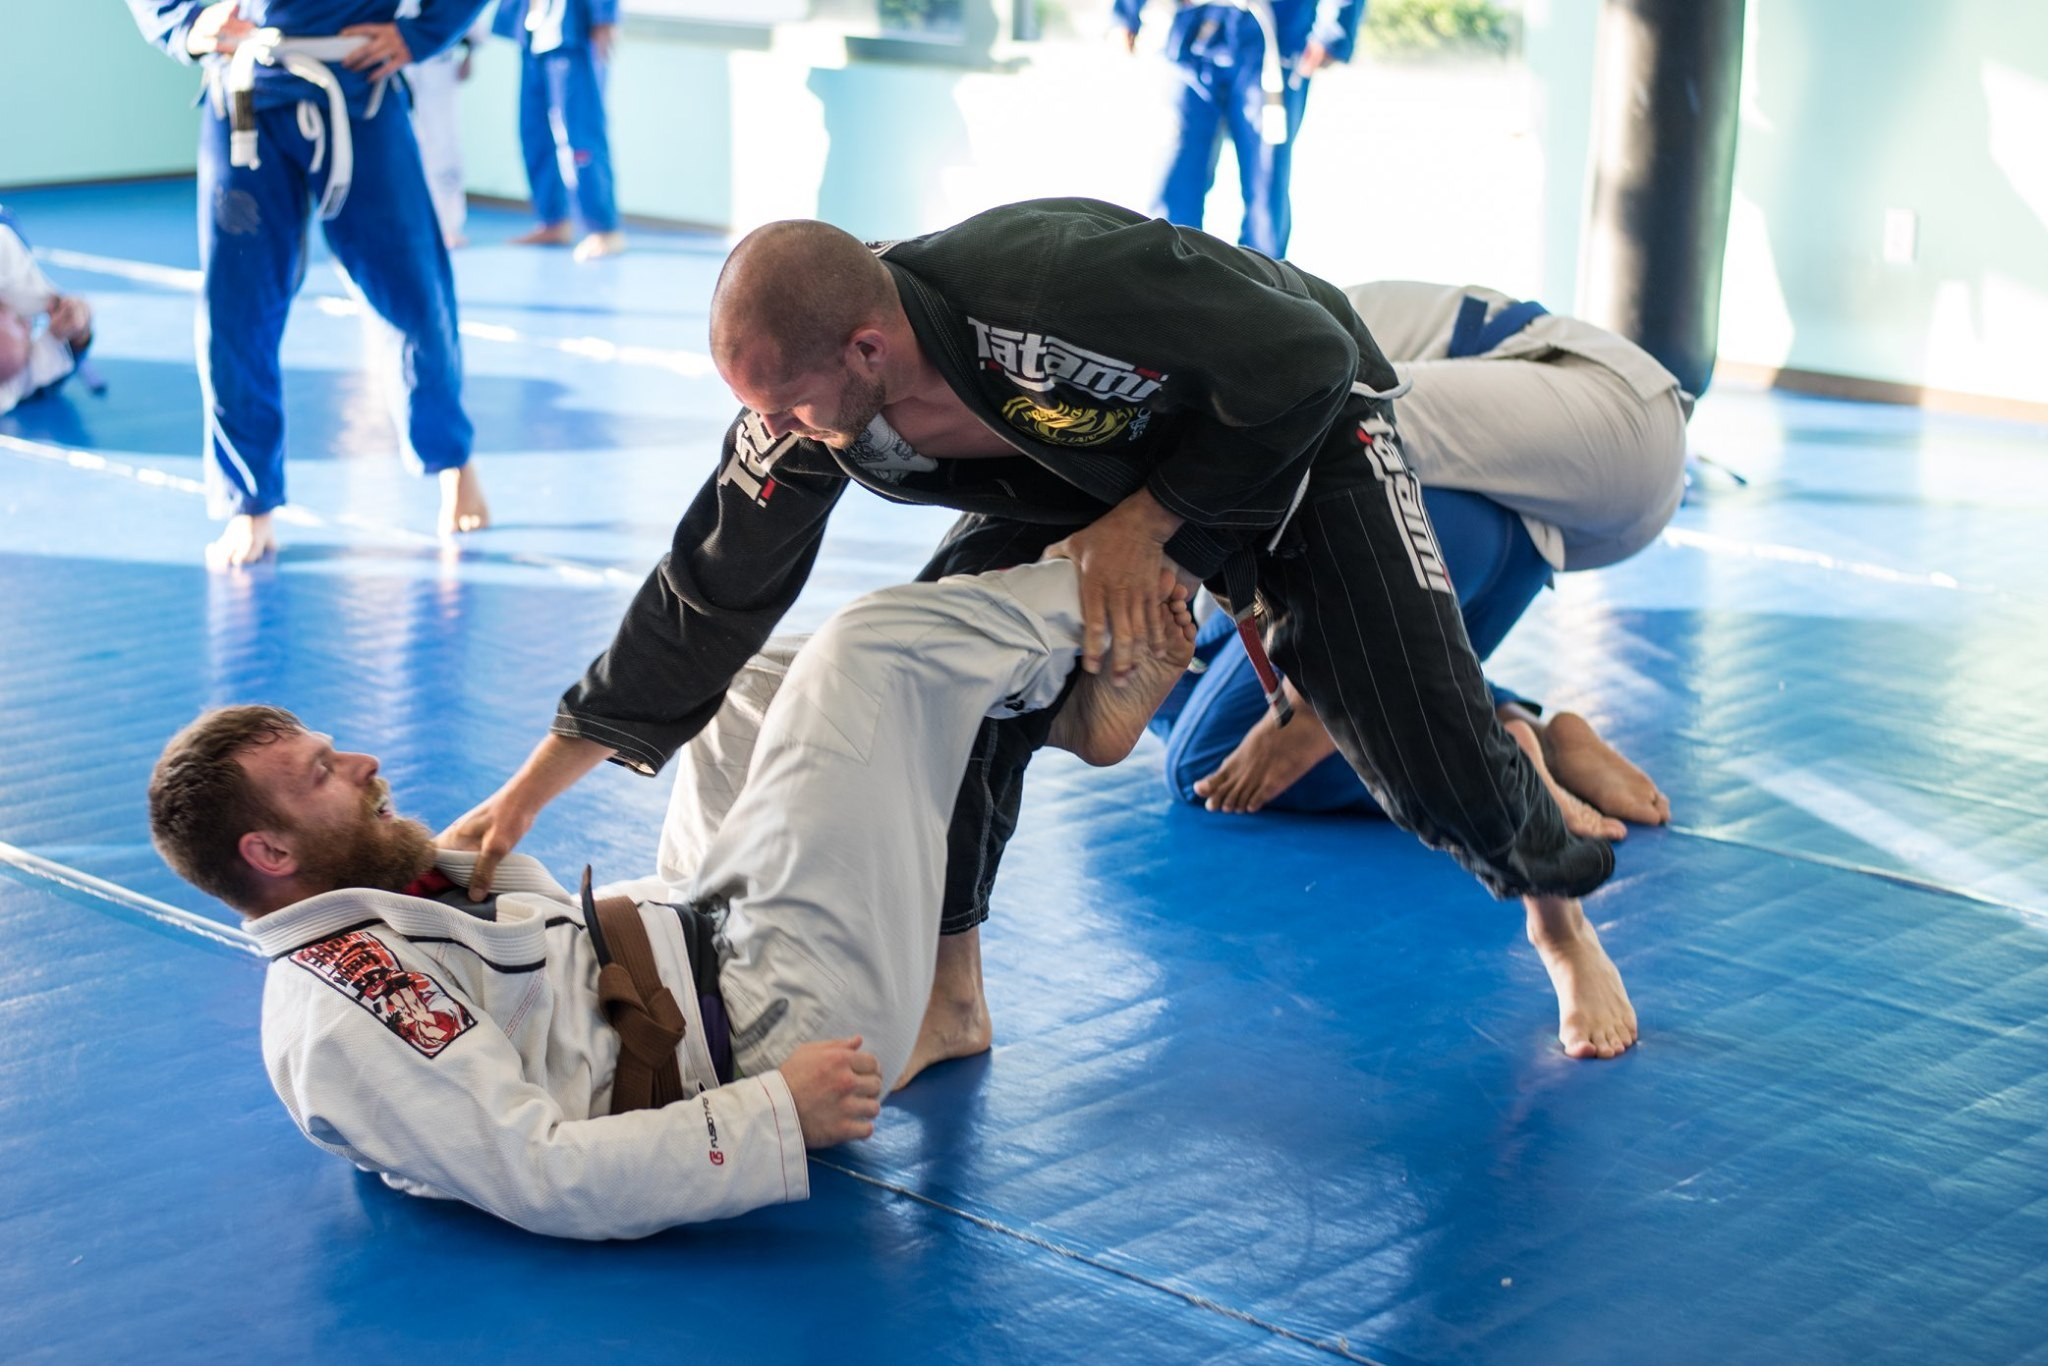 Why RipTide - Riptide has 18+ years of Jiu Jitsu ExperienceWe are the original Mixed Martial Arts Gym In the Lewes areaWe have a Strong LINEAGE with Robson Moura AssociationWe have a WArm and FRIENDLY ENVIRONMENT THAT'S easy for beginners to start.Join Today For your free week of training